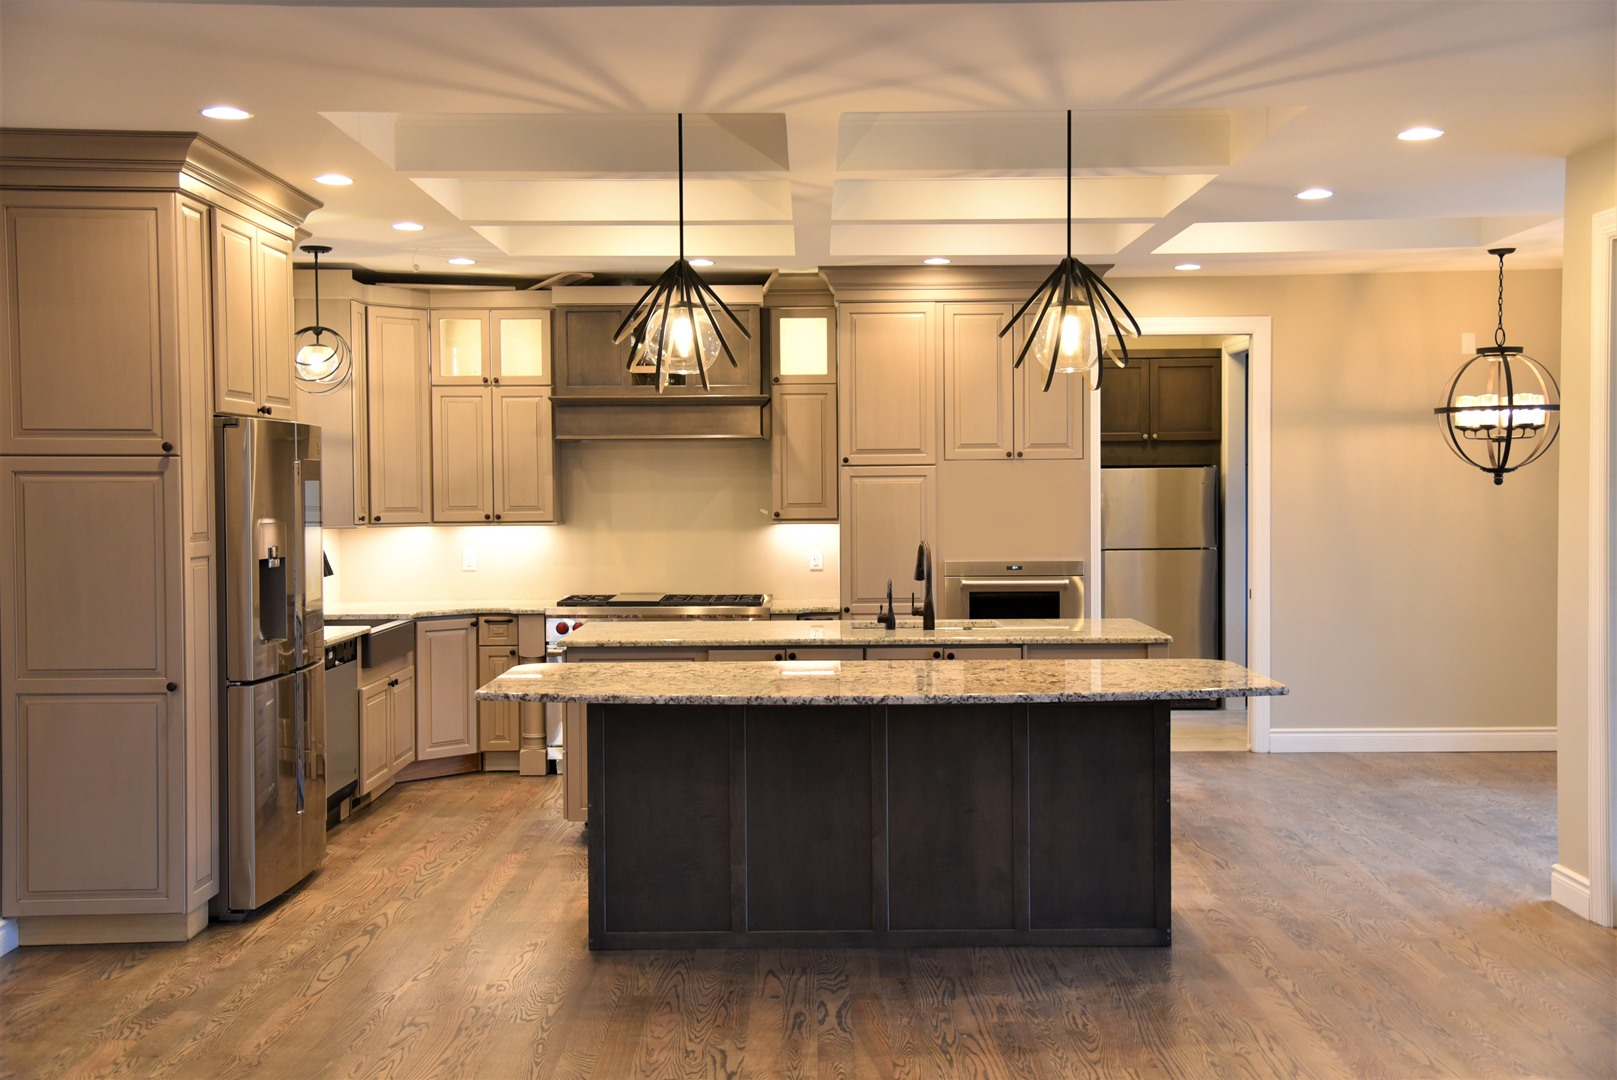 beige colored kitchen with lighting